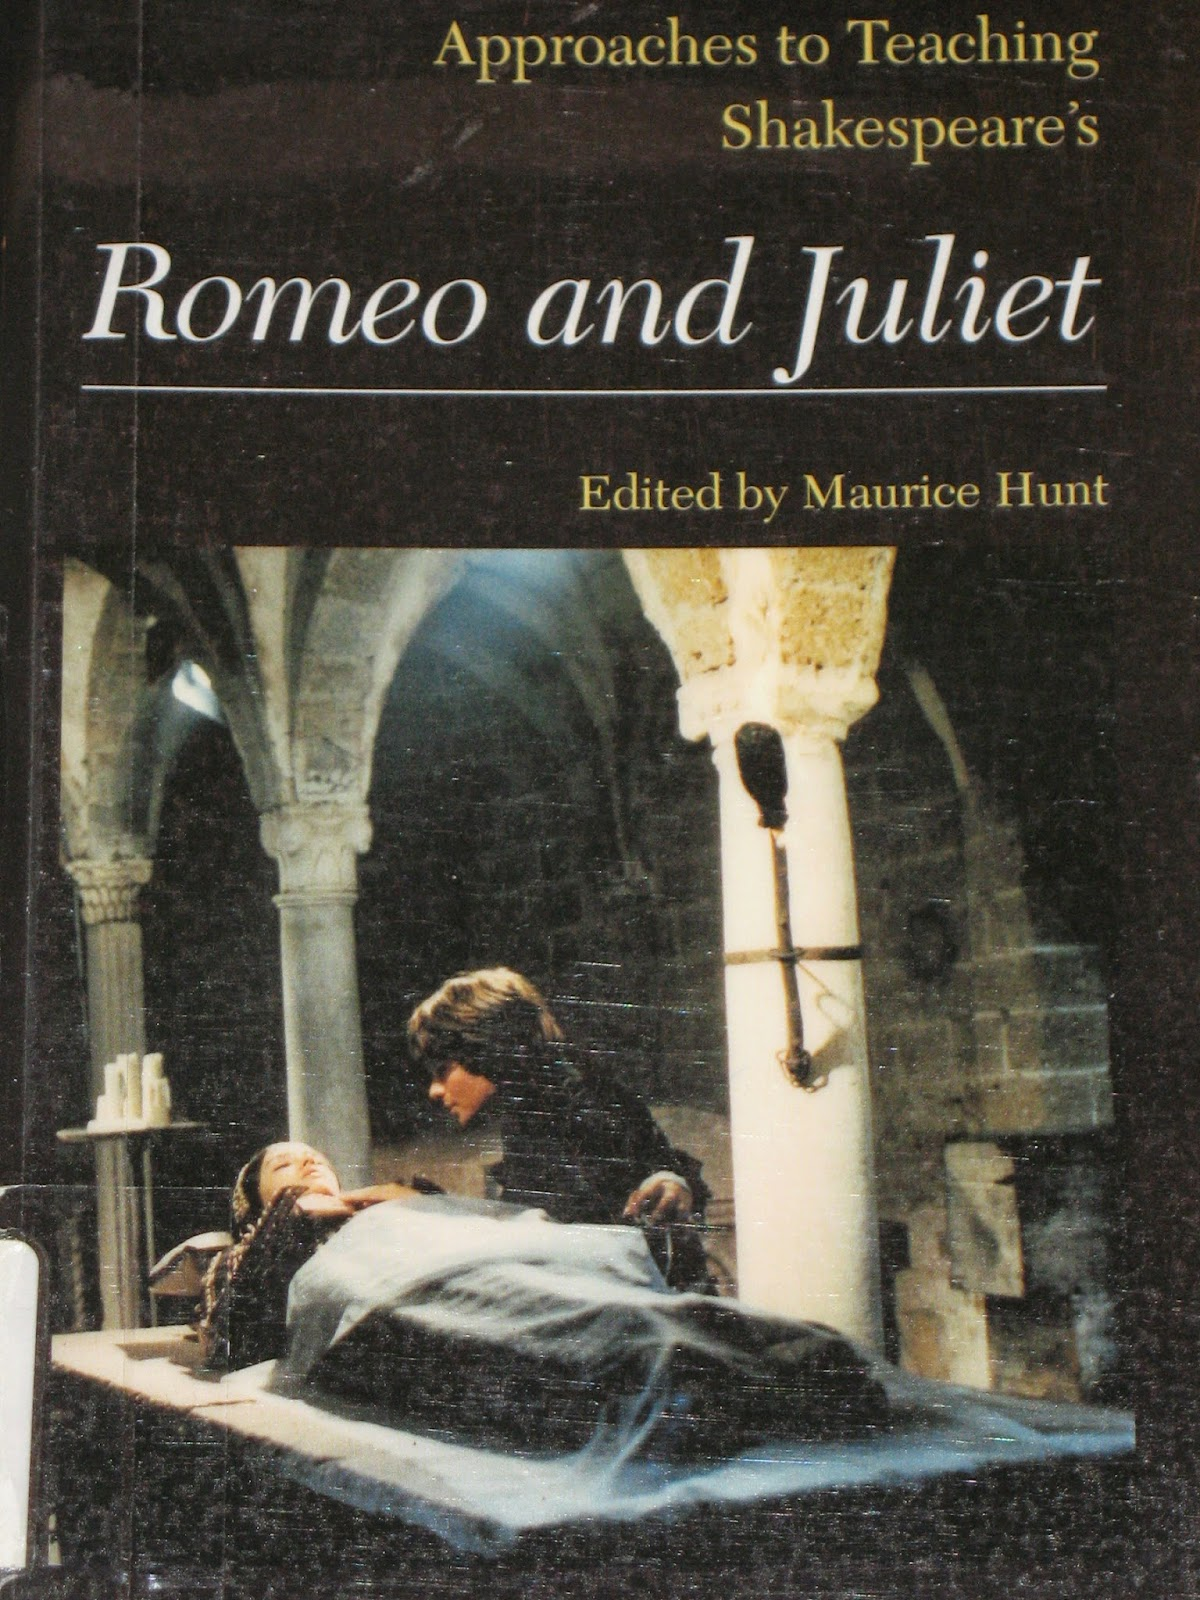 the types of love in shakespeares romeo and juliet Shakespeare's original play, romeo and juliet and luhrmann's appropriated version, both investigate different types of conflict the two texts are set in completely contrasting social and historical contexts of elizabethan england to southern california in verona beach.